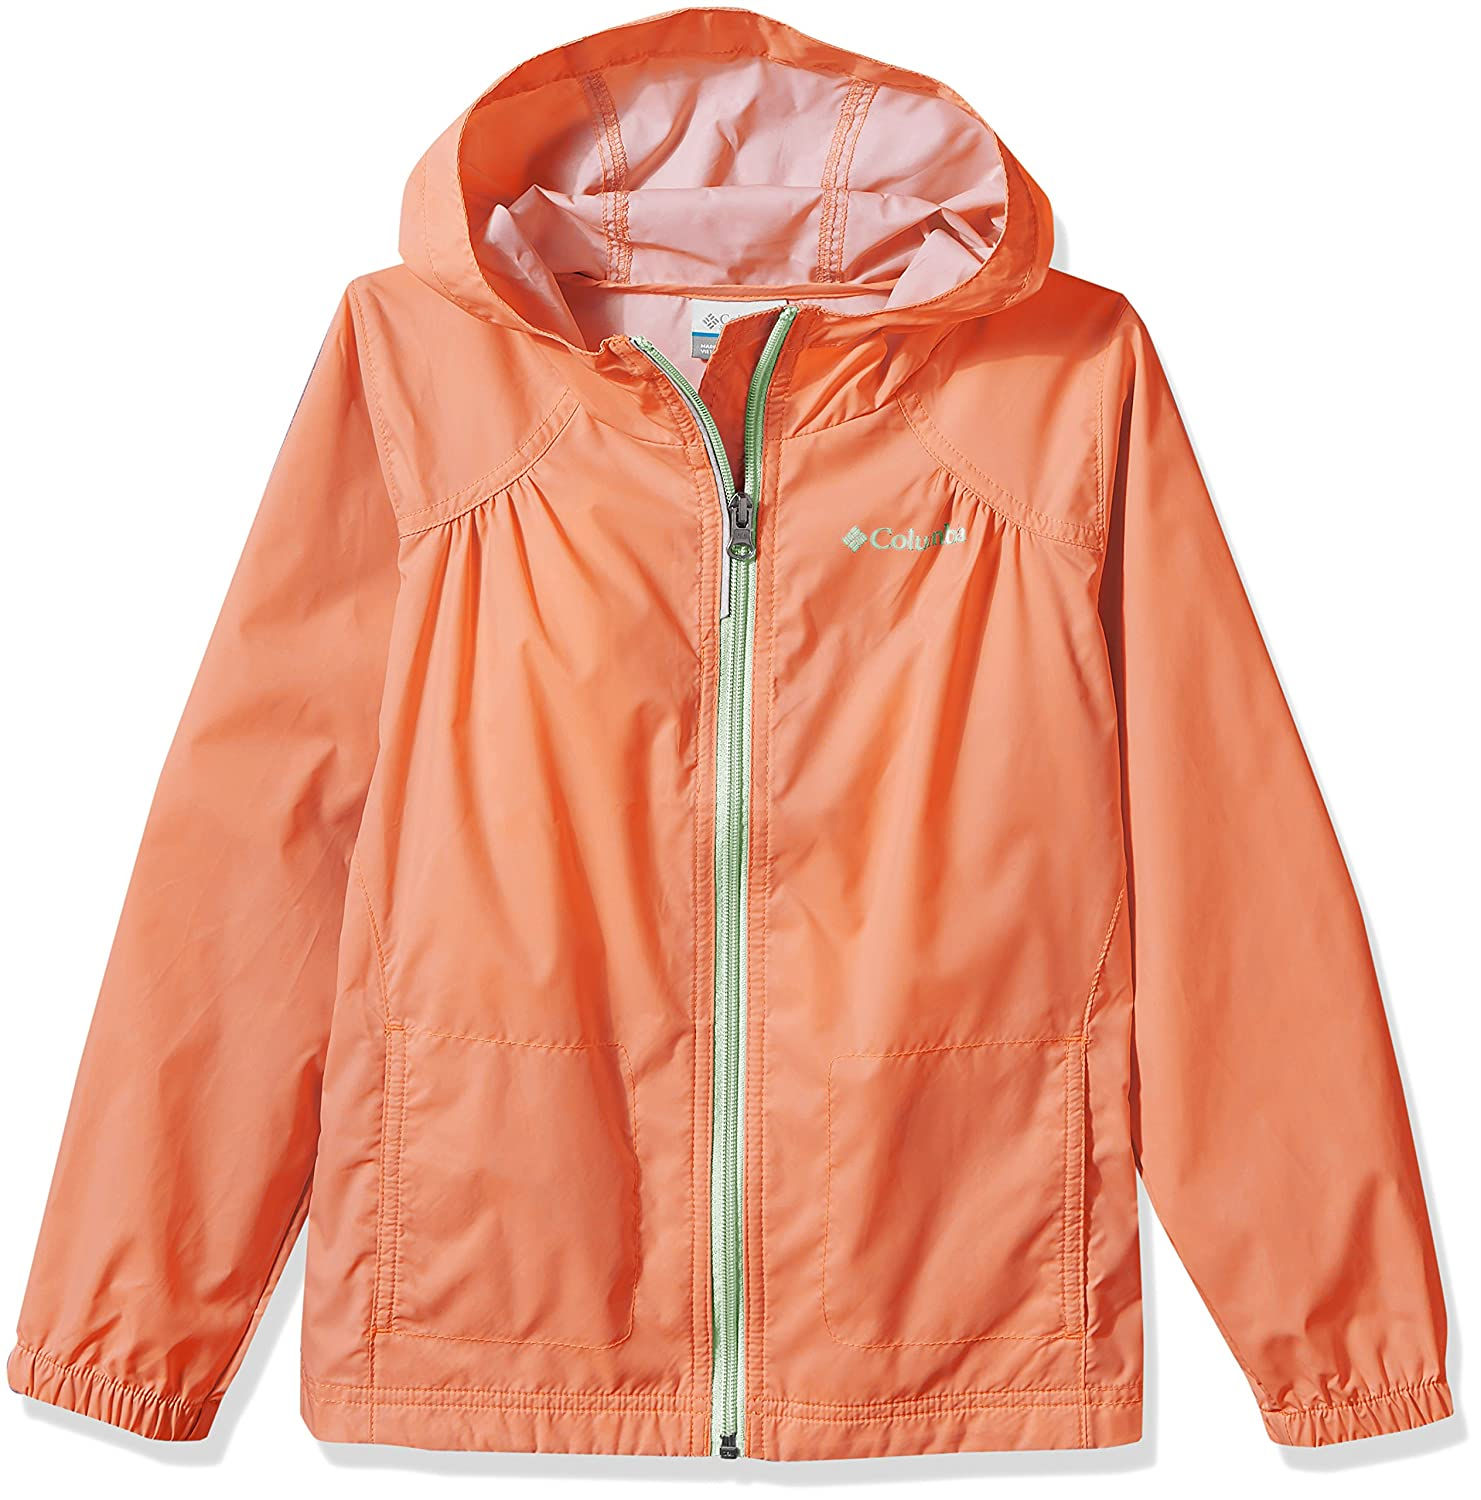 winter coats for kids girls target tradingbasis